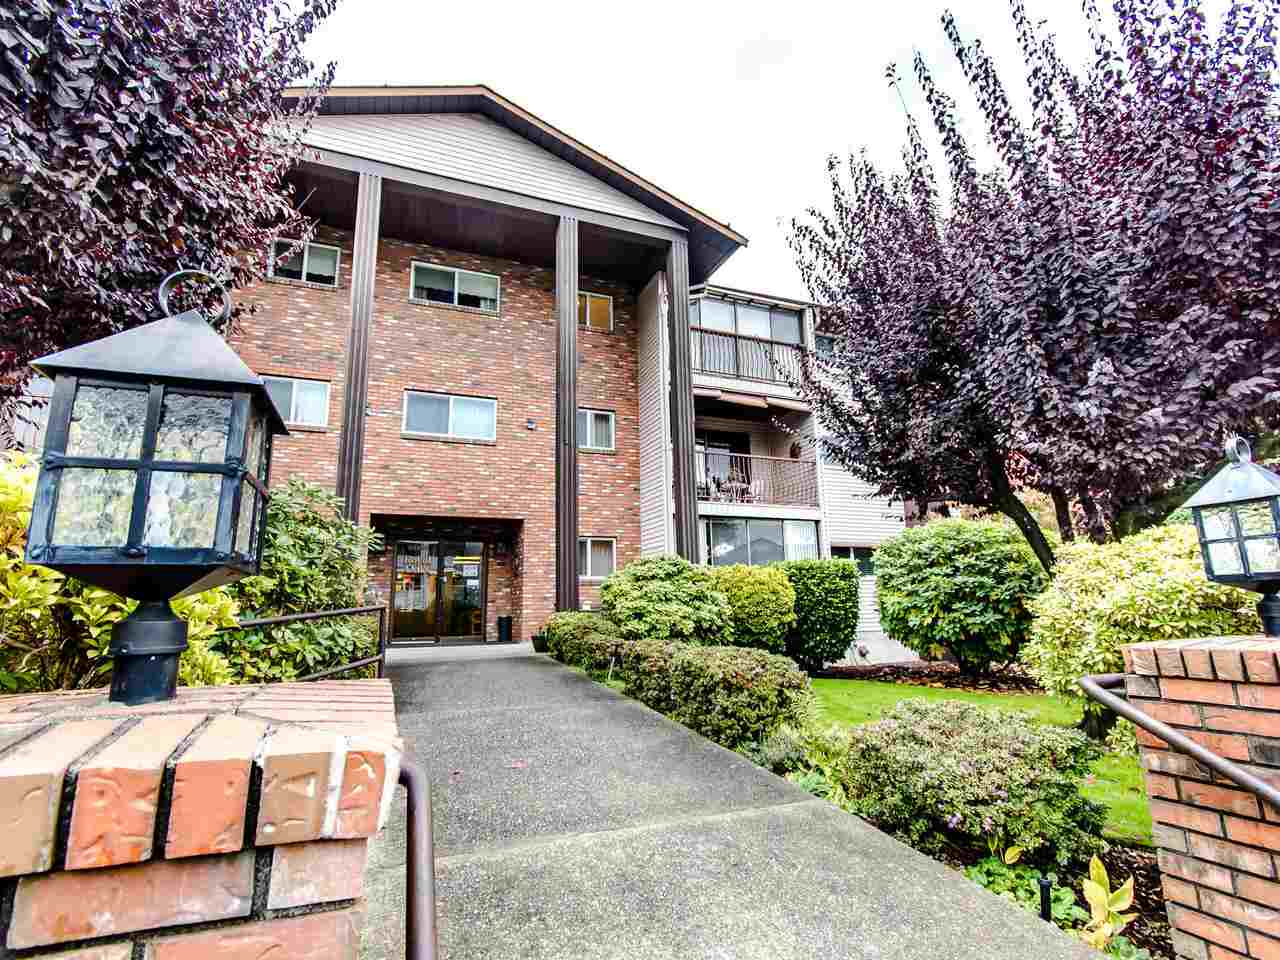 204 32910 AMICUS PLACE - MLS® # R2441175